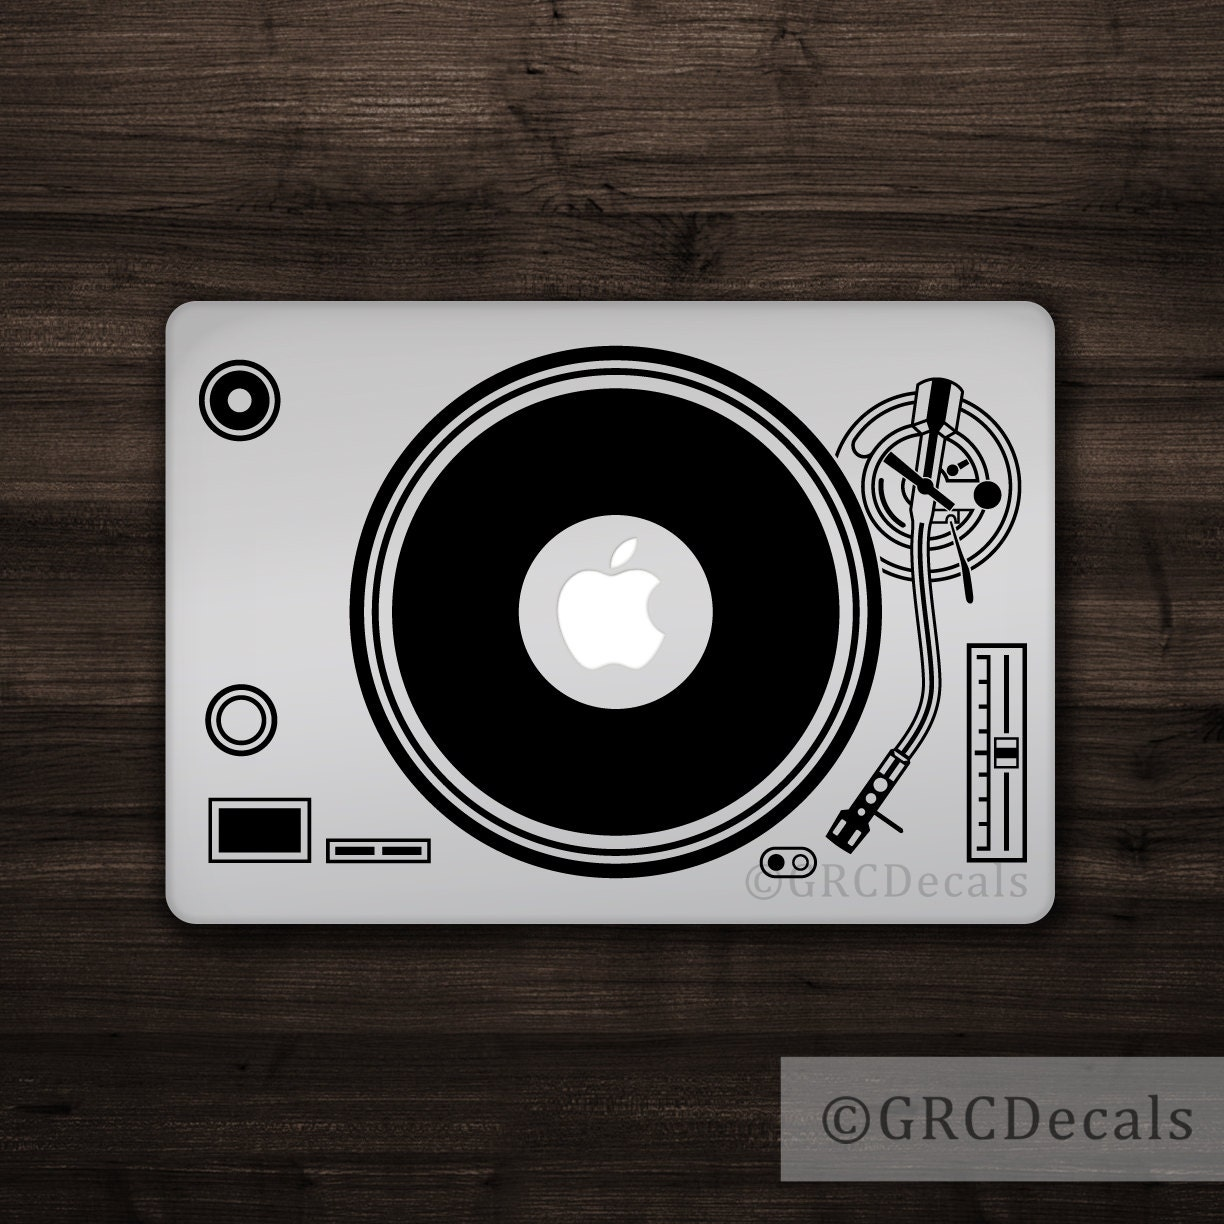 Dj turntable mac apple logo cover laptop vinyl decal sticker etsy